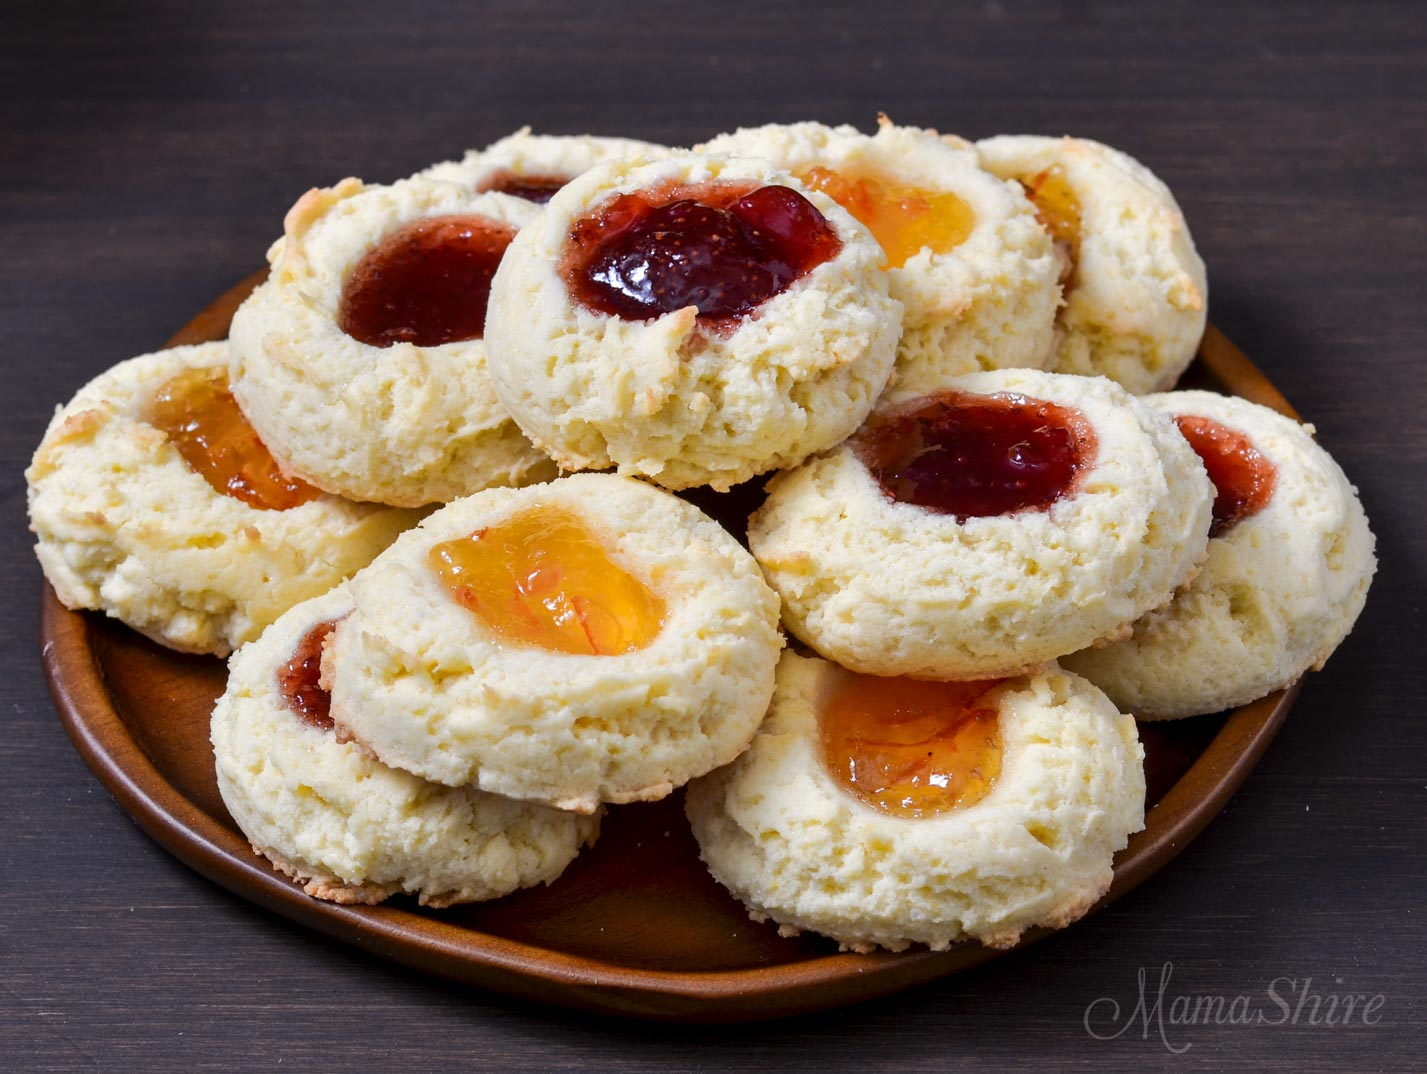 Gluten-free thumbprint cookies with orange marmalade and strawberry jam.